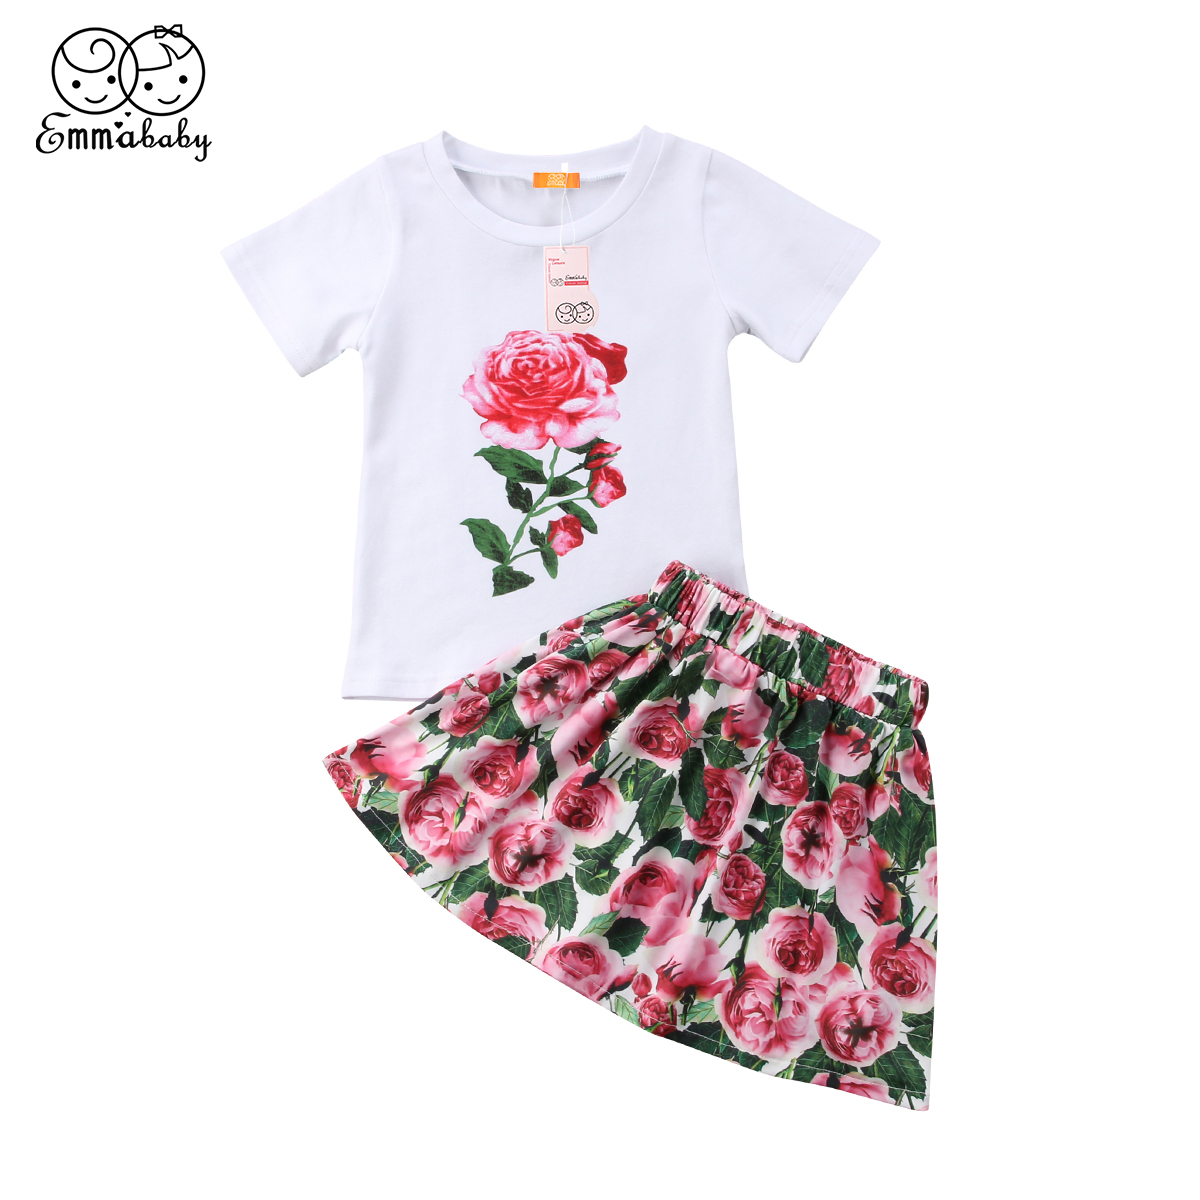 eb565ed95b50 Cute Toddler Kids Baby Girl Outfits Floral Tops Shirt Shortsleeve Skirt  Cotton Clothes Set Summer Outfit Baby Girl 2-7T 2PCS